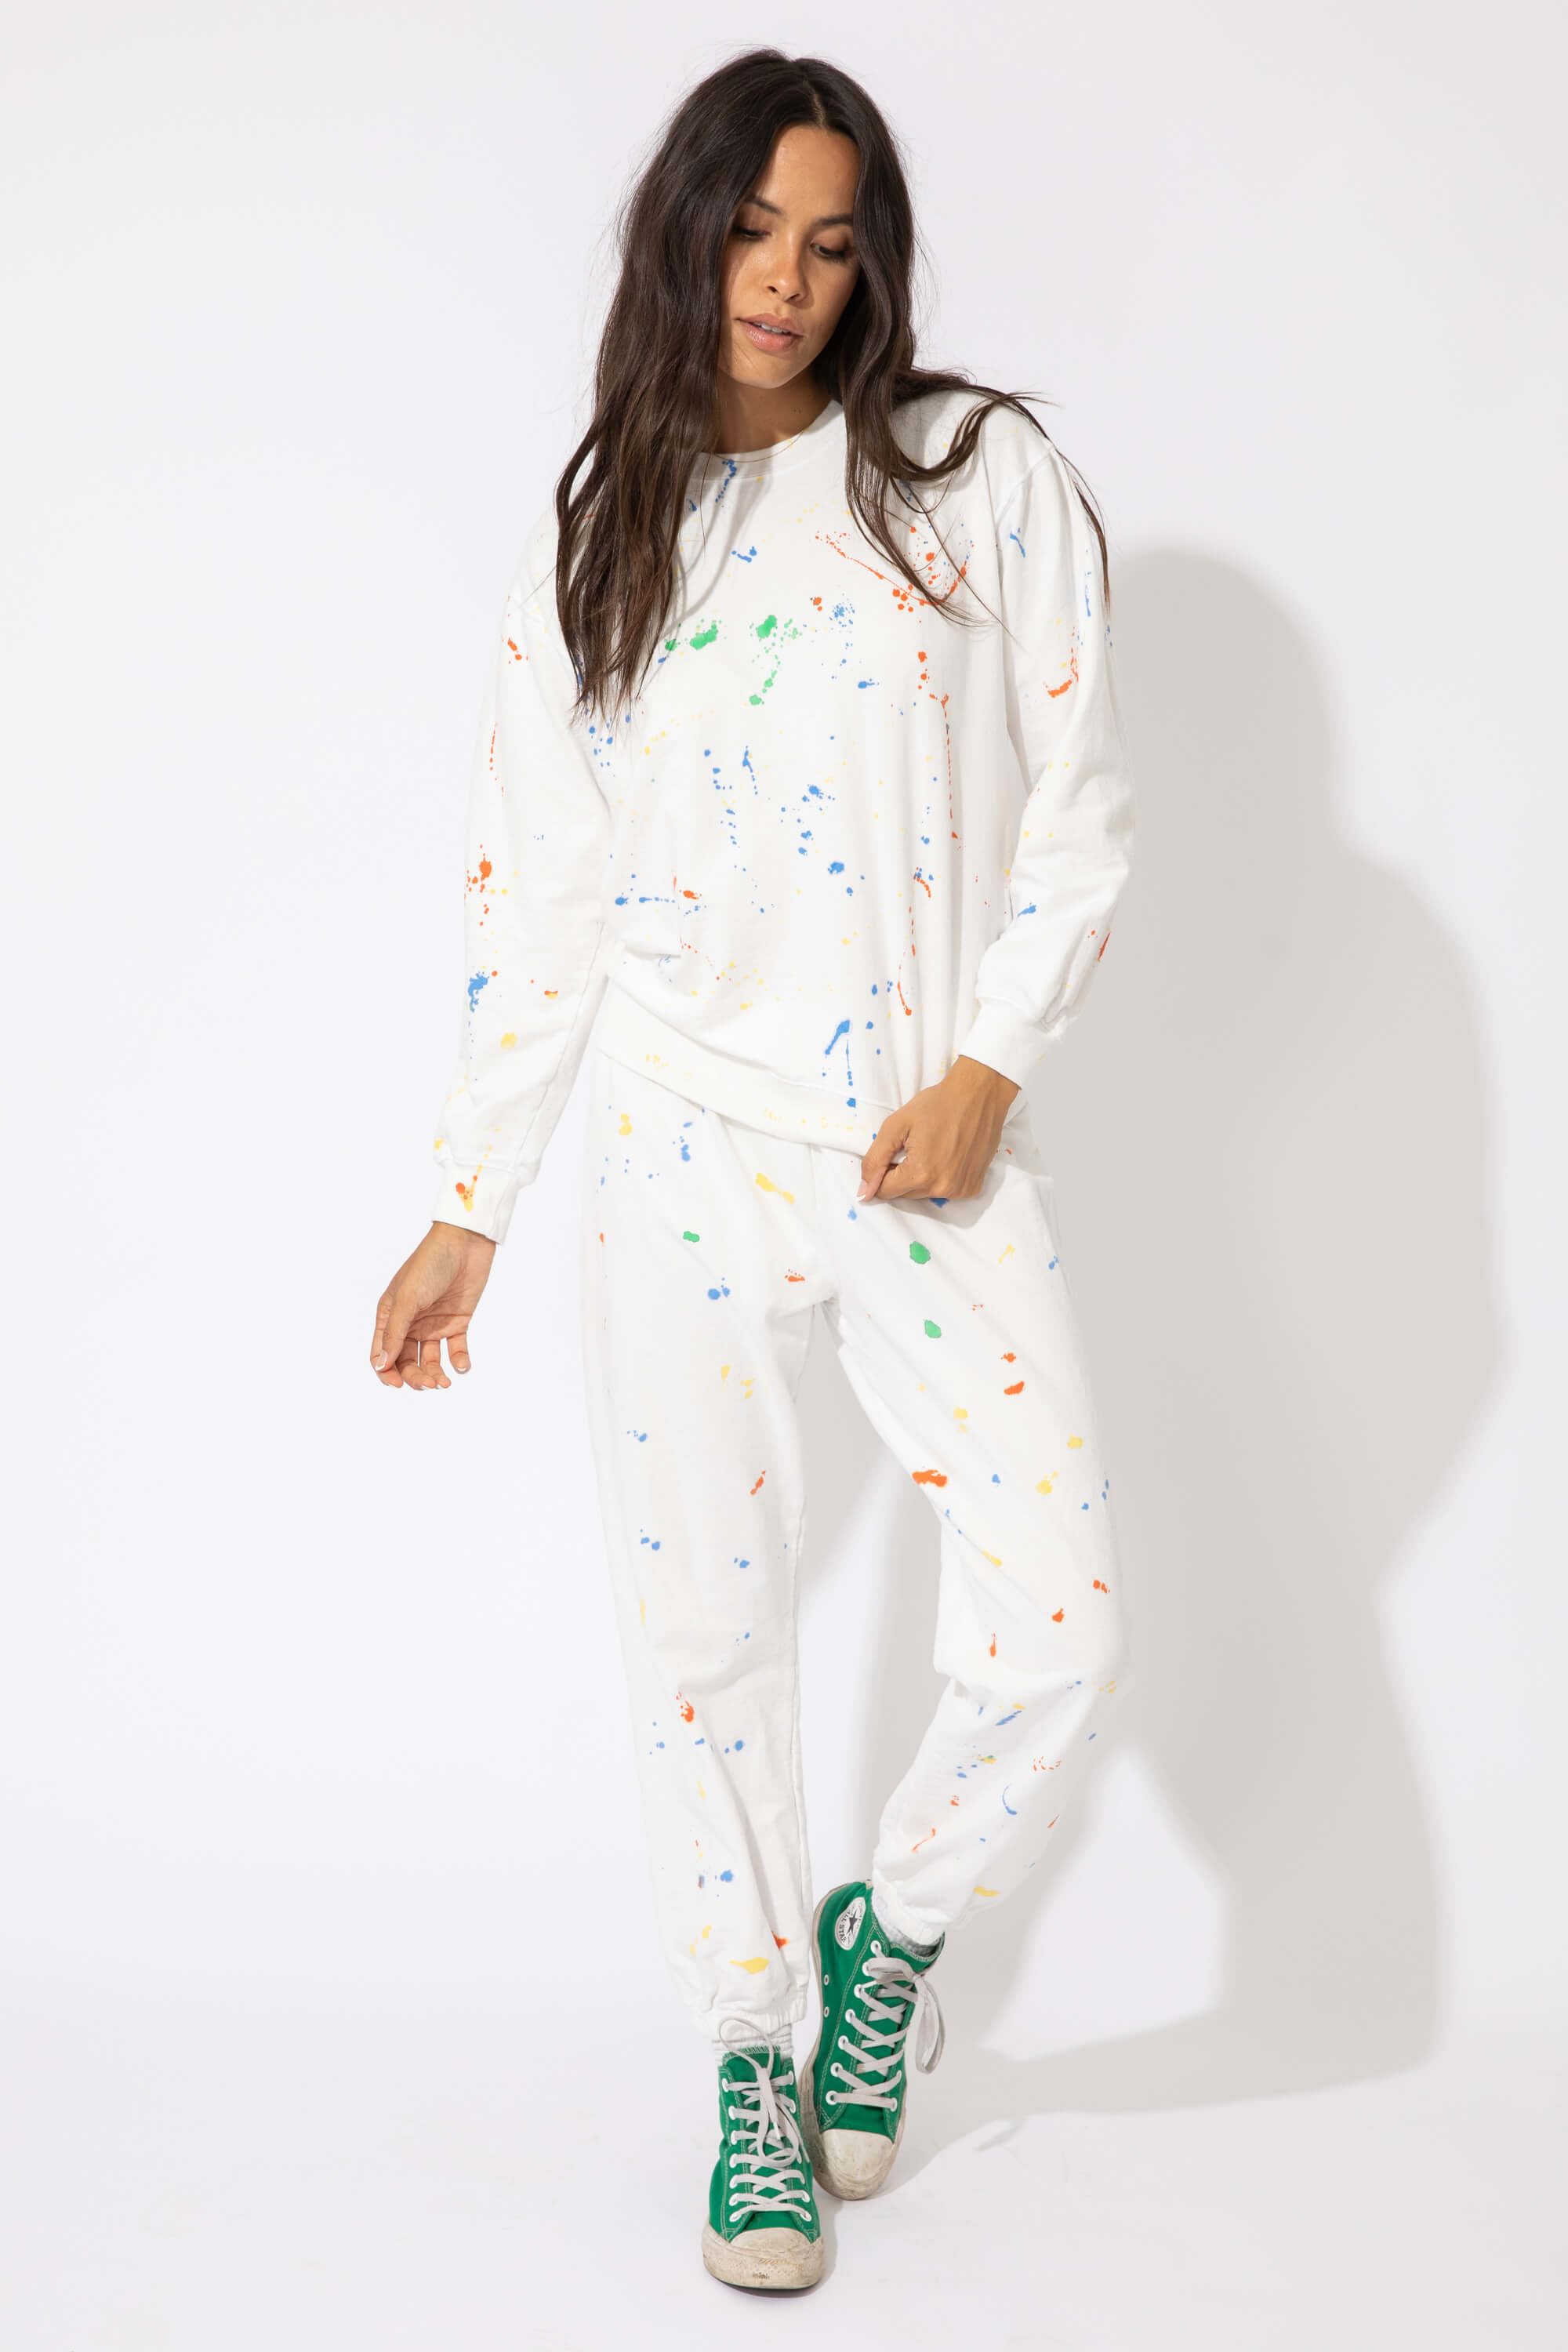 SPLATTER PAINT UNDERGRAD SWEATS